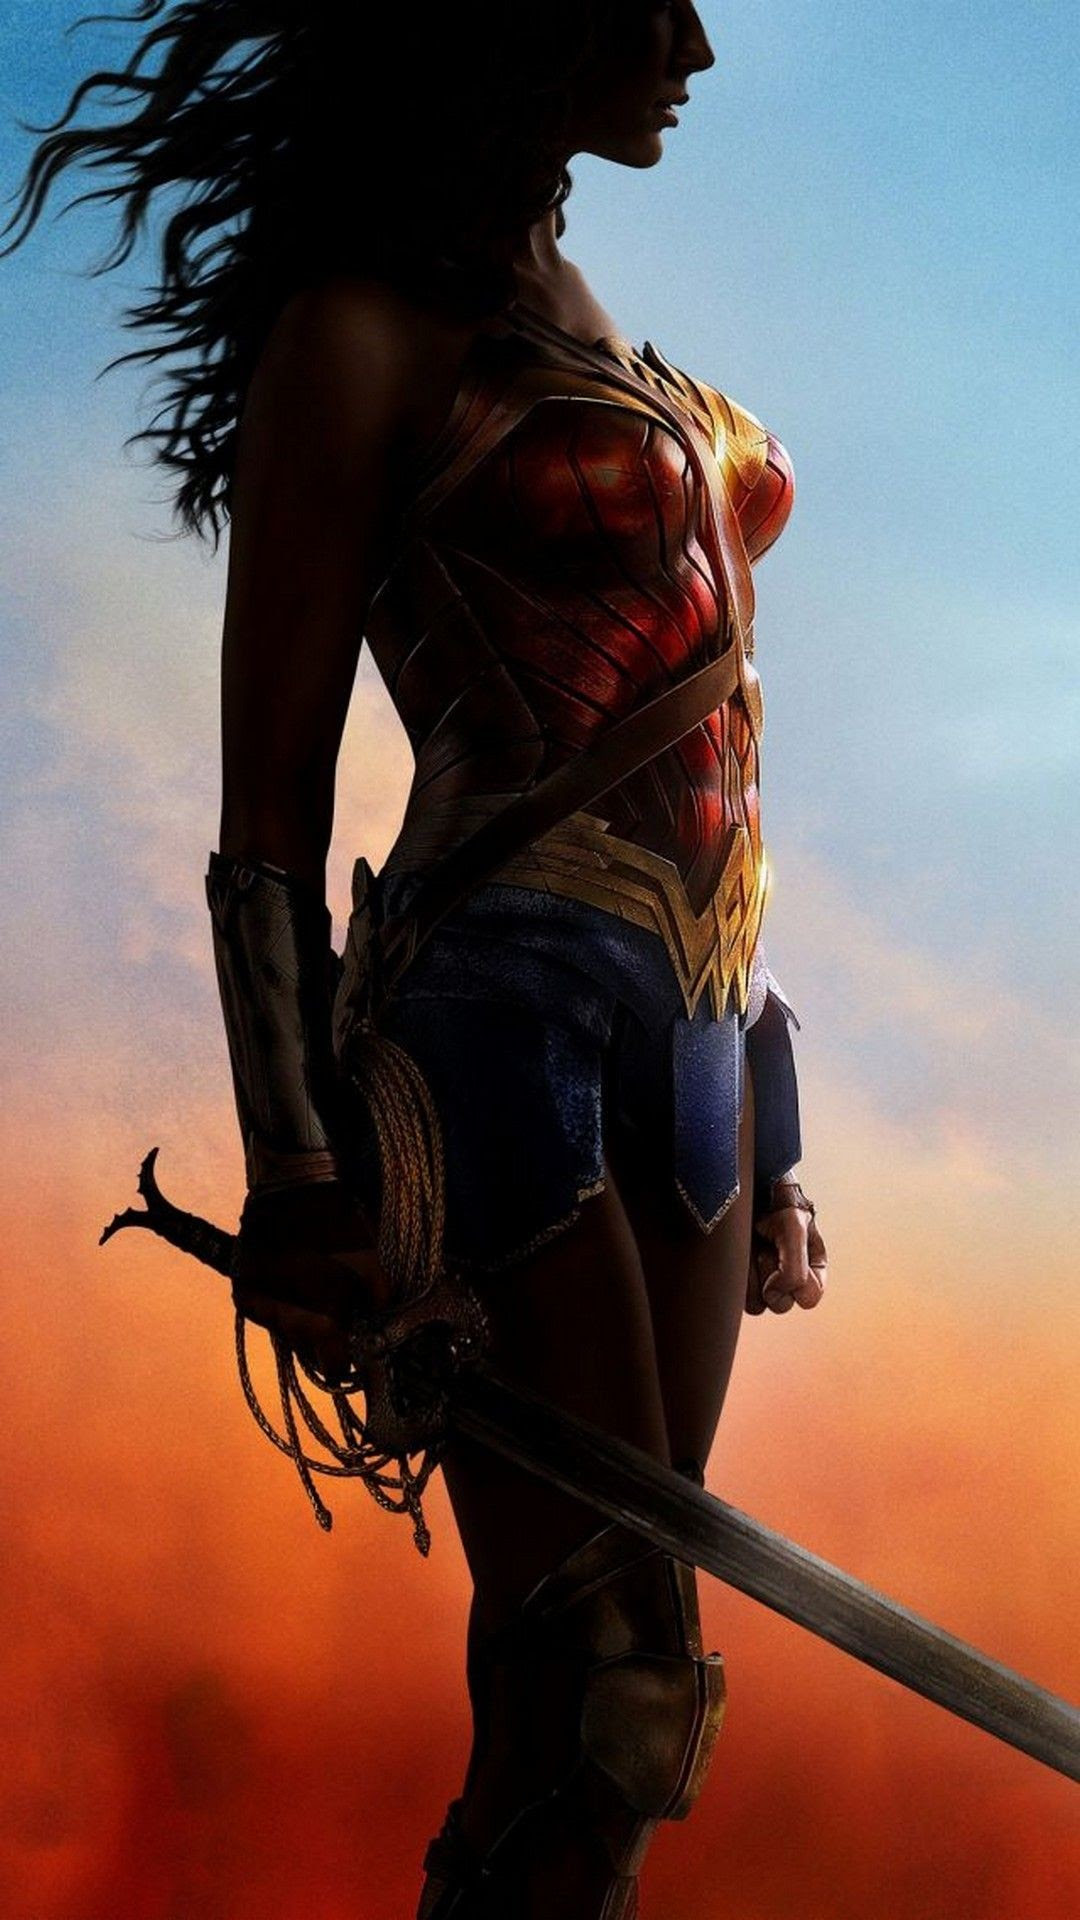 Wonder Woman Wallpaper Screen Savers 67 Images